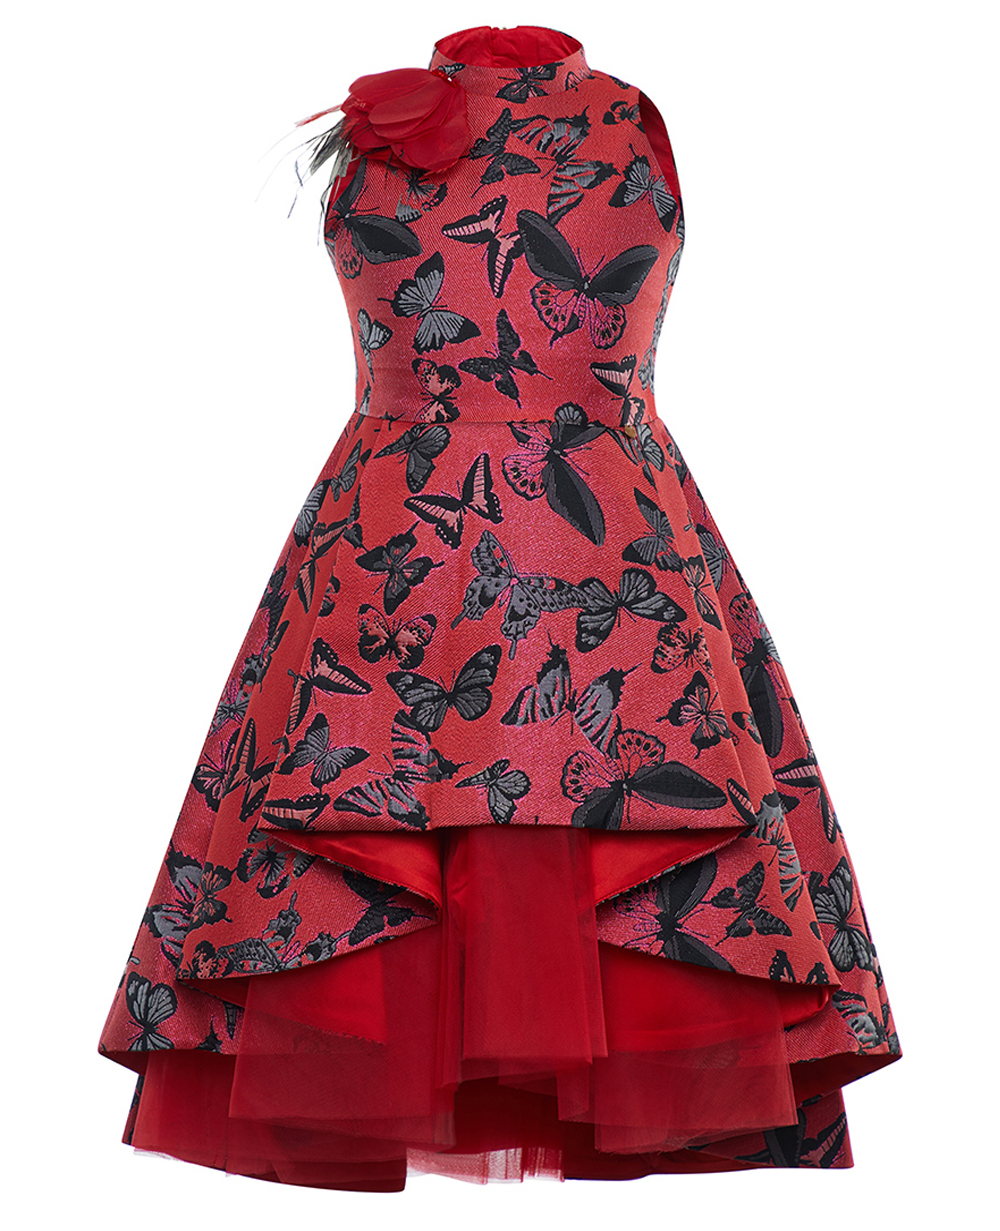 Red Brocade Supreme Dress